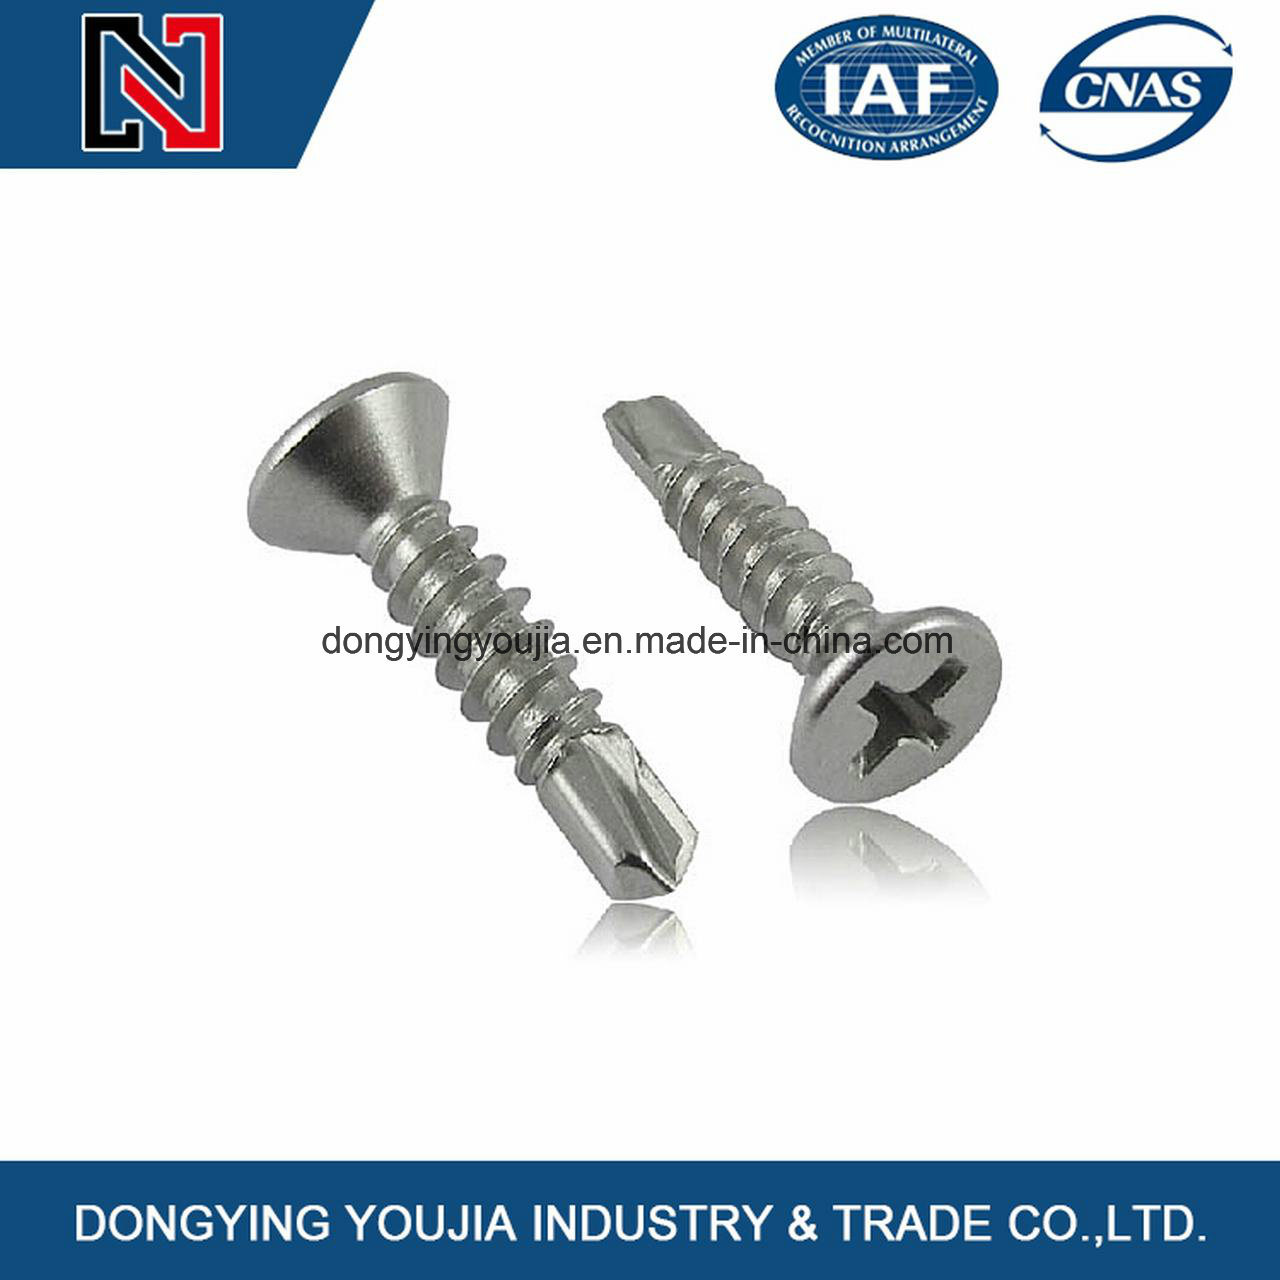 Philips Countersunk Head Self Tapping Screws